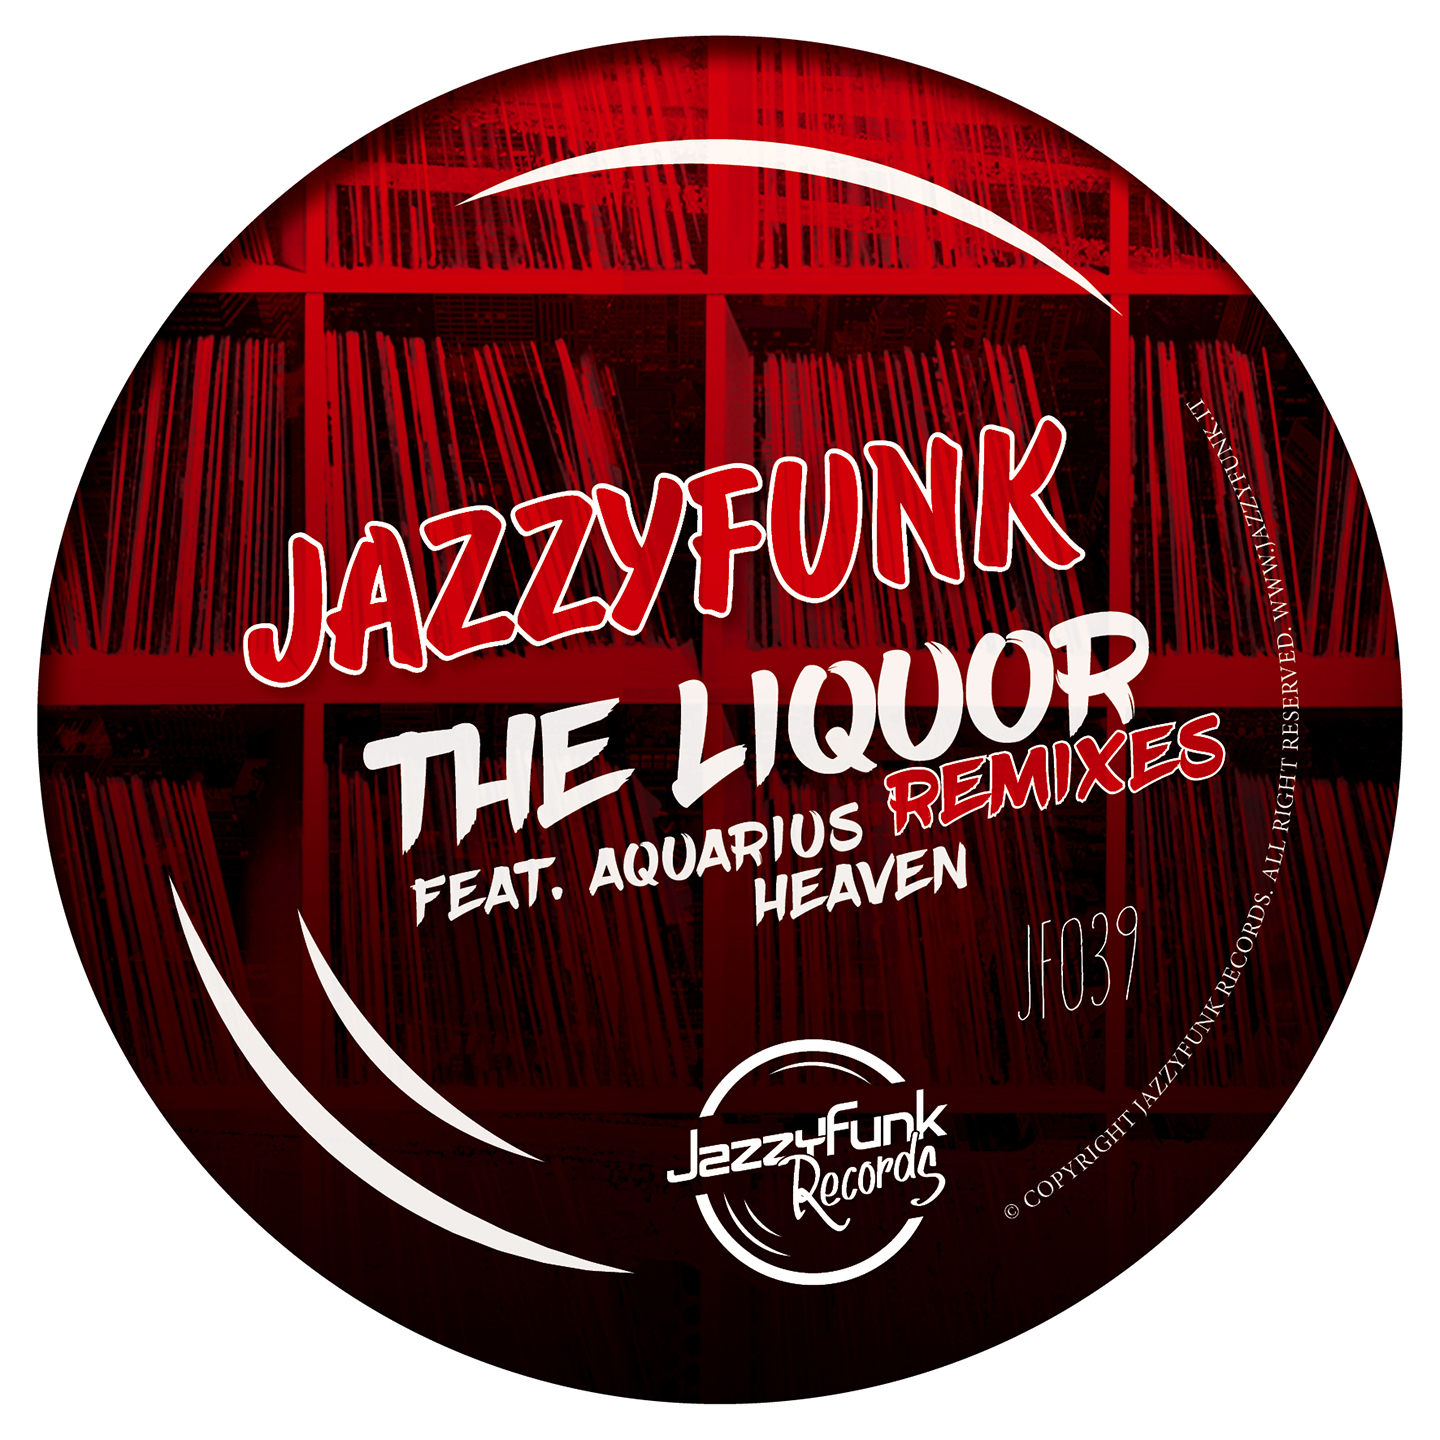 The Liquor (Remixes)